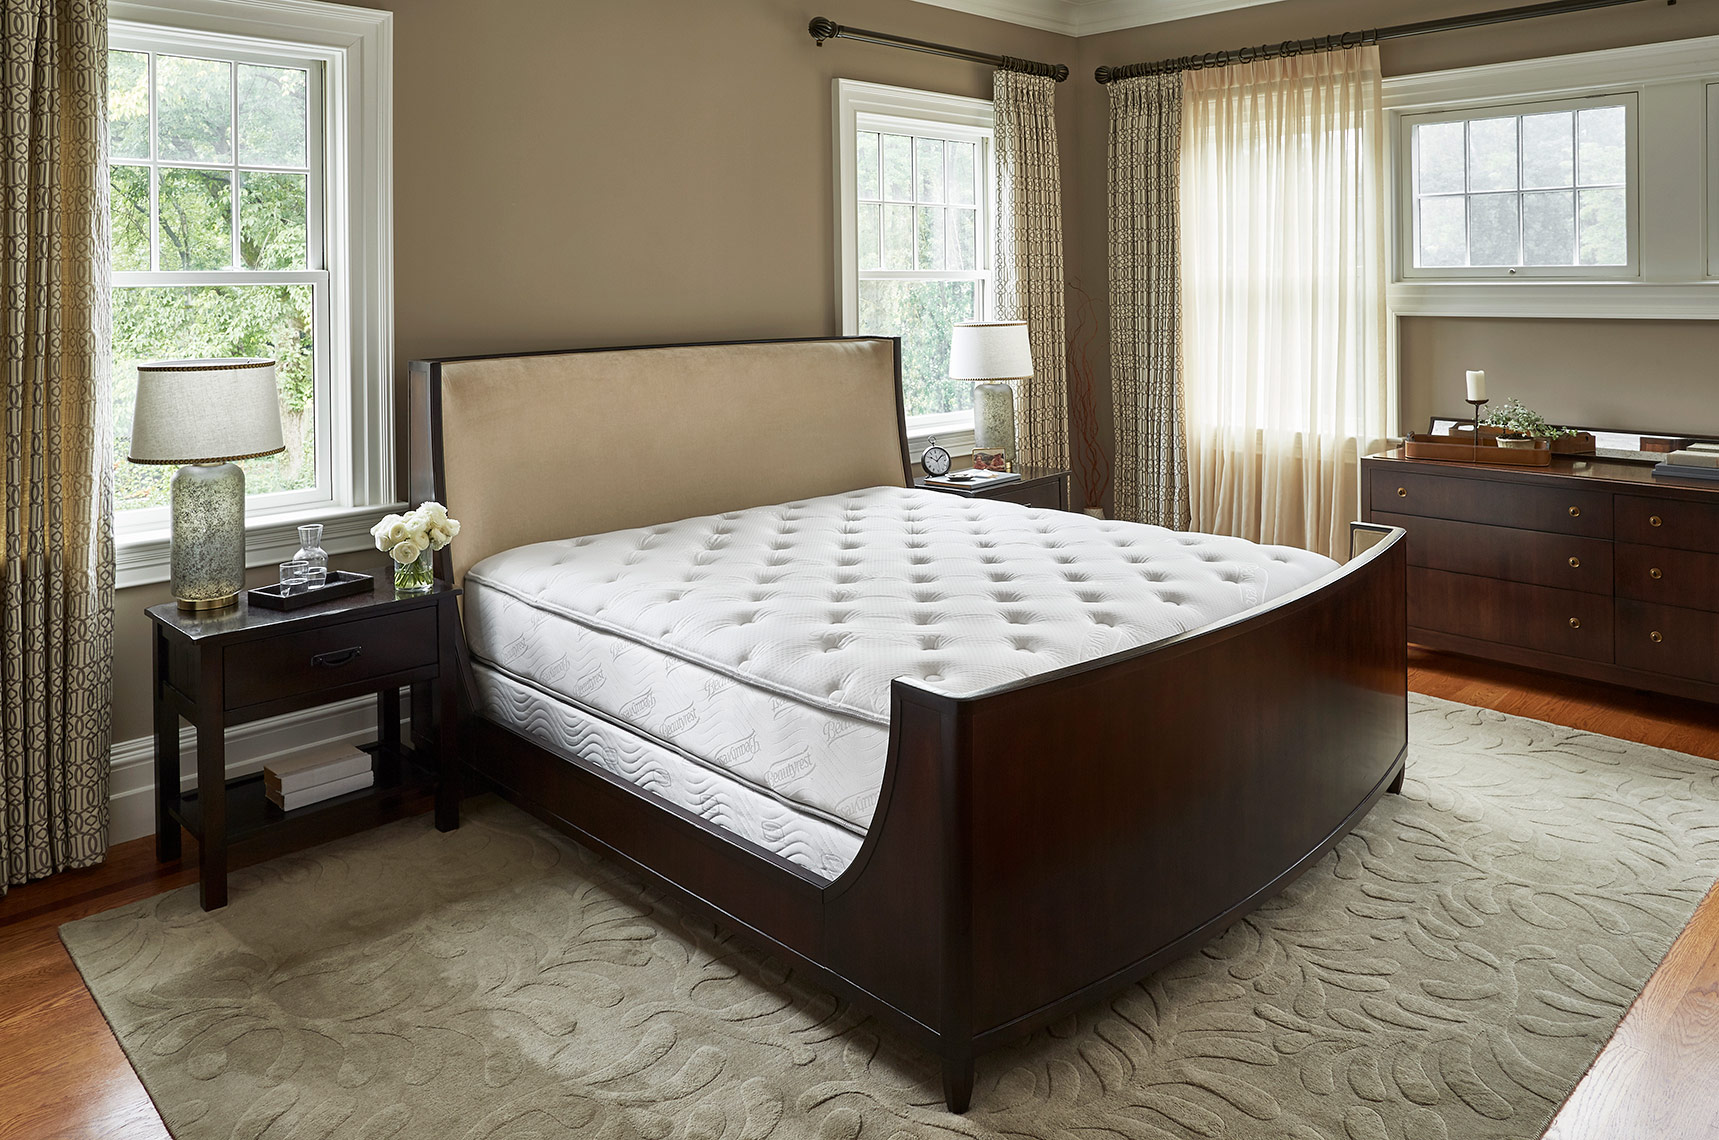 HOTELS-ShopJW24-Mattress-and-Boxspring